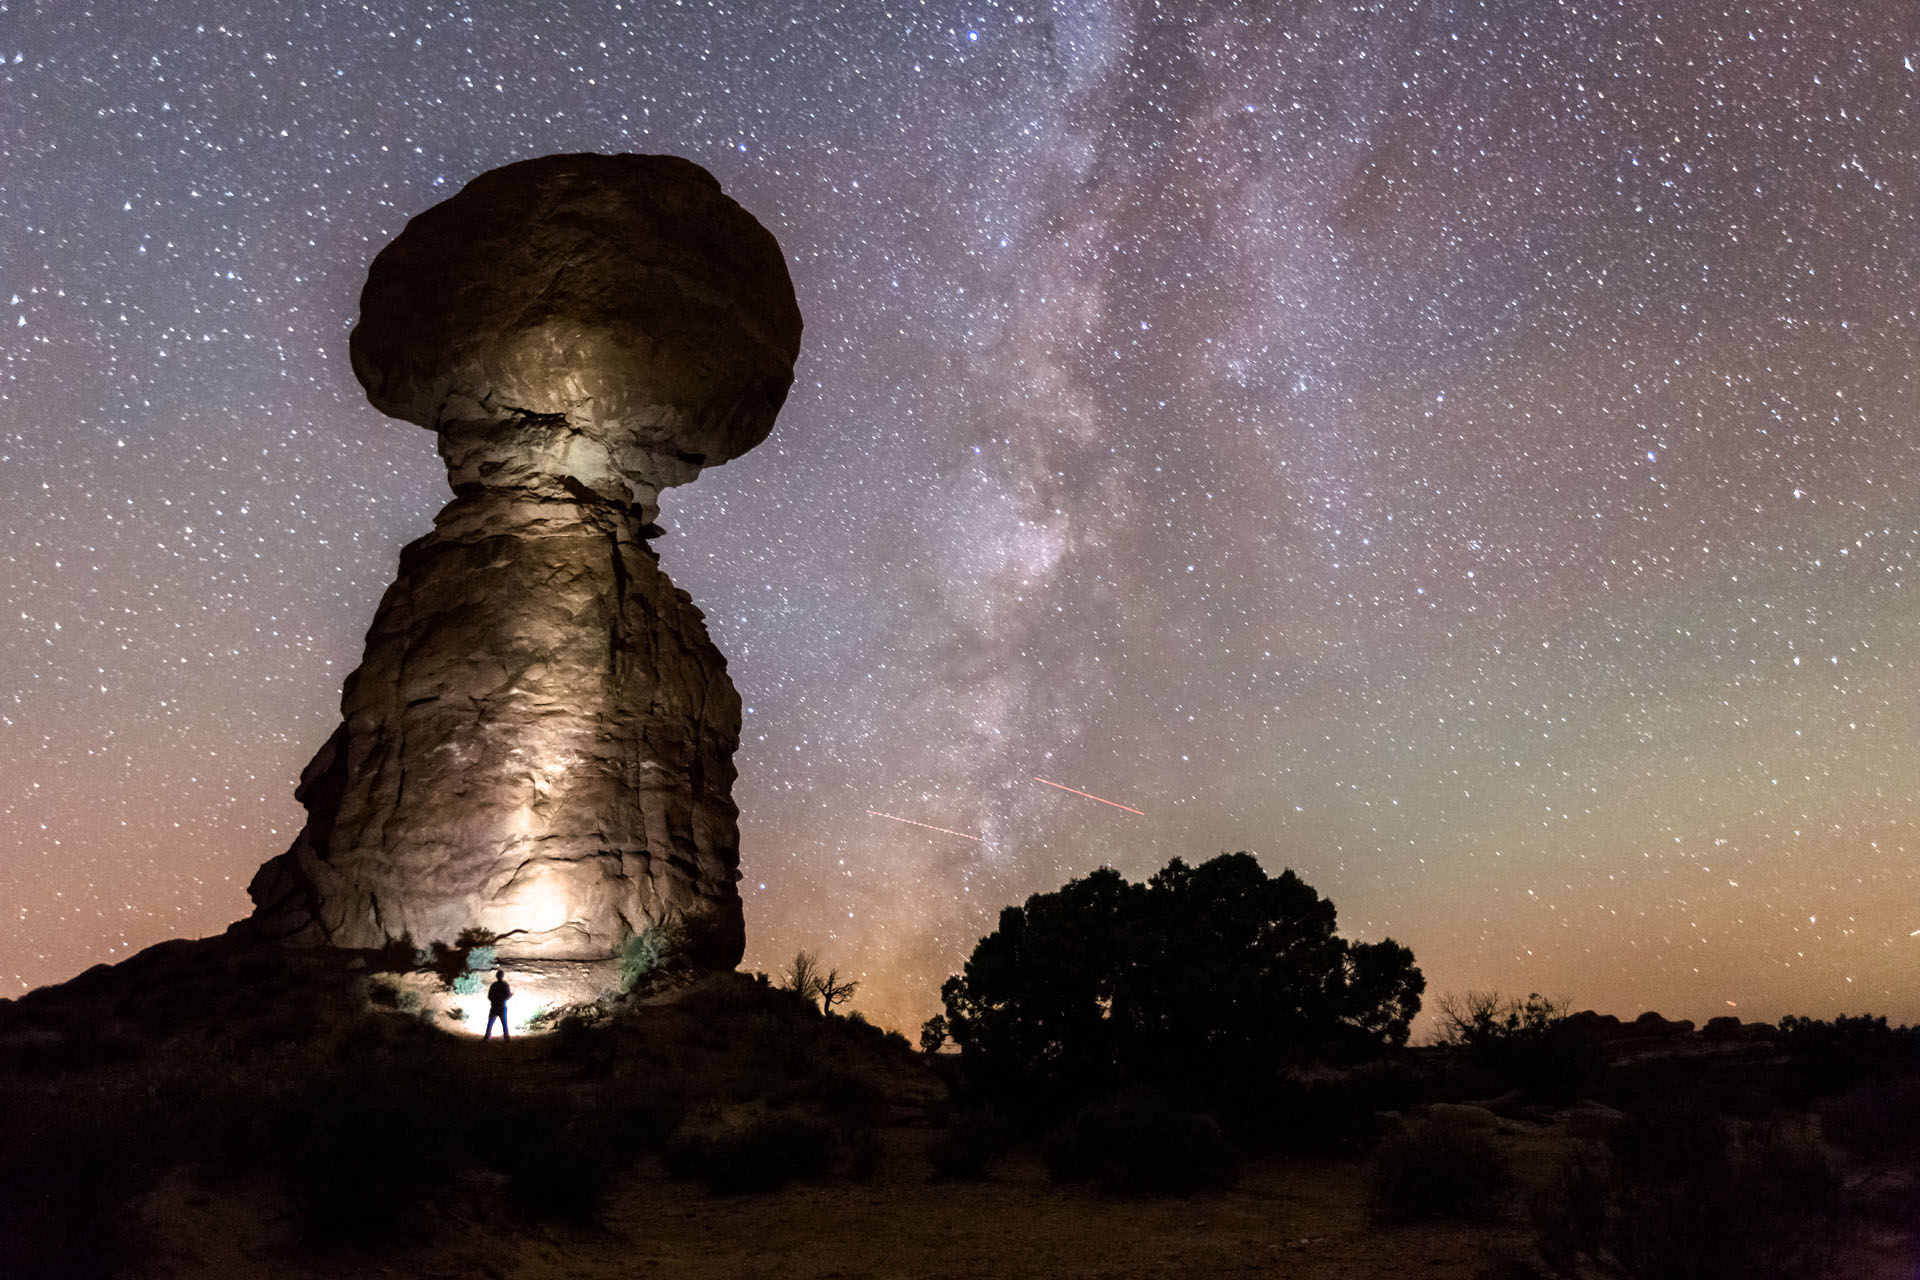 USA-Arches-Balance-rock-Astrophotography-adventure